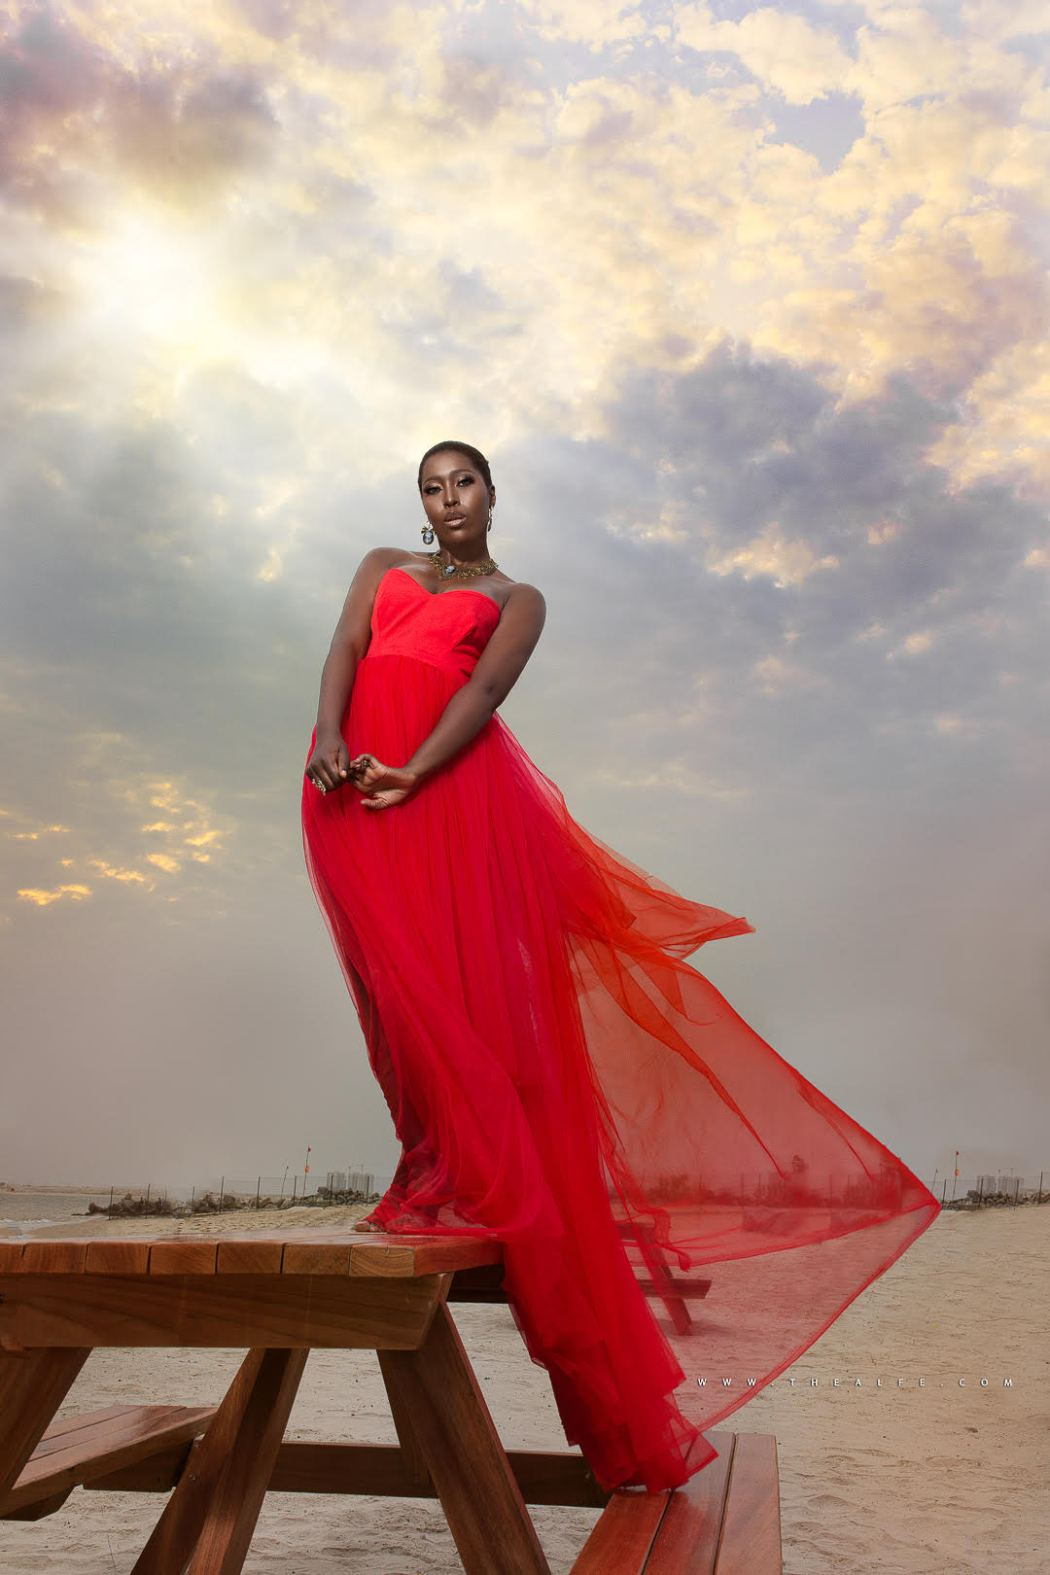 Vimbai 7 - Media girl Vimbai Mutinhiri releases stunning new birthday photos